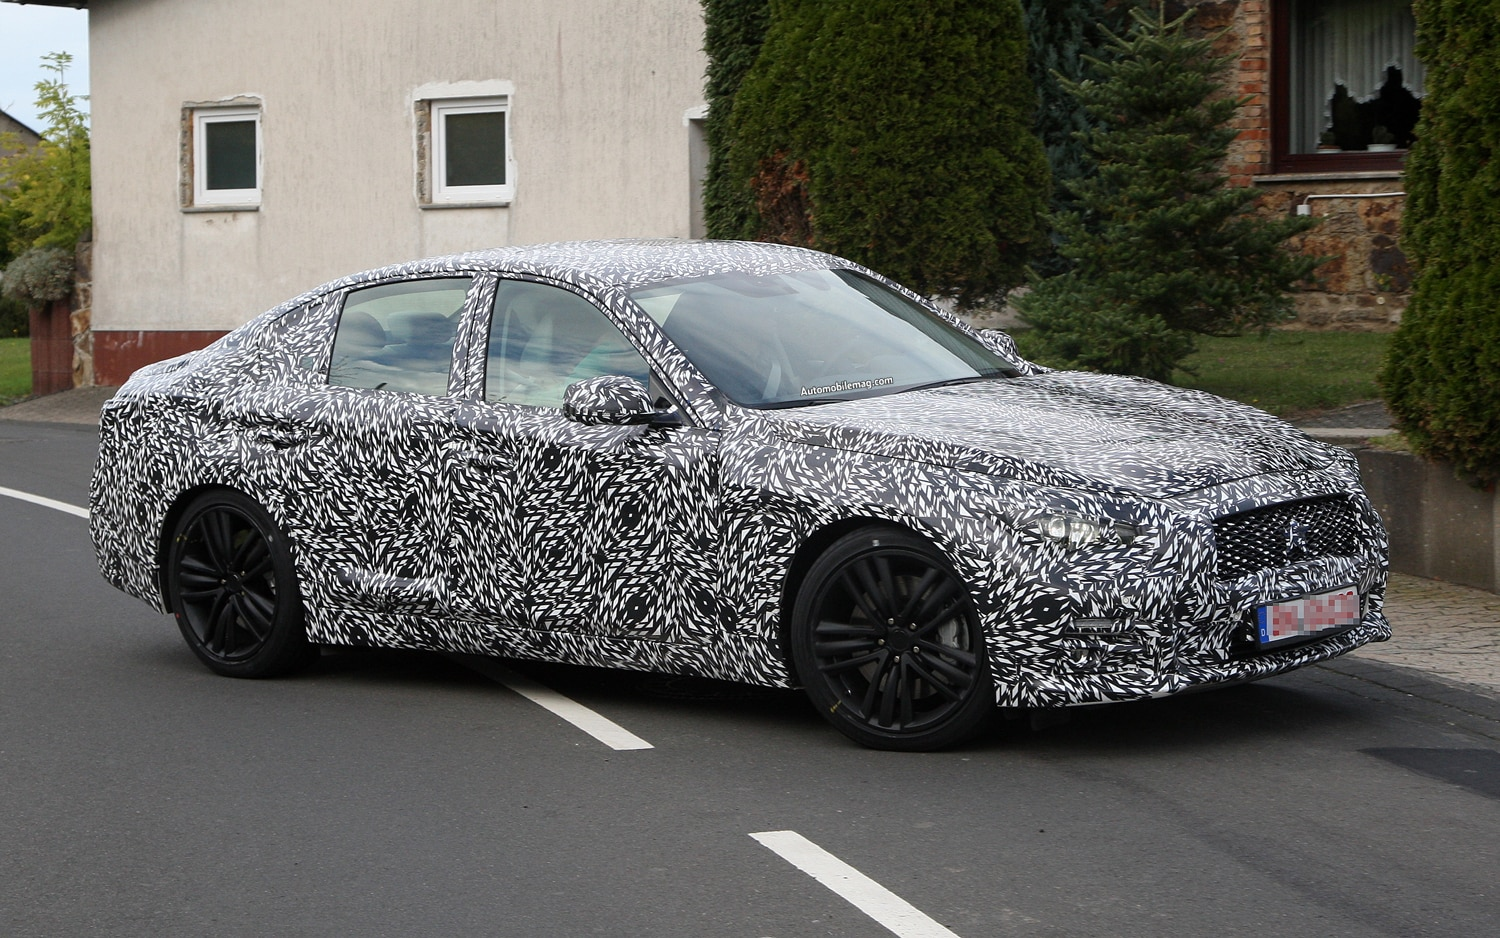 2014 Infiniti G Right Front Spy Shots 21